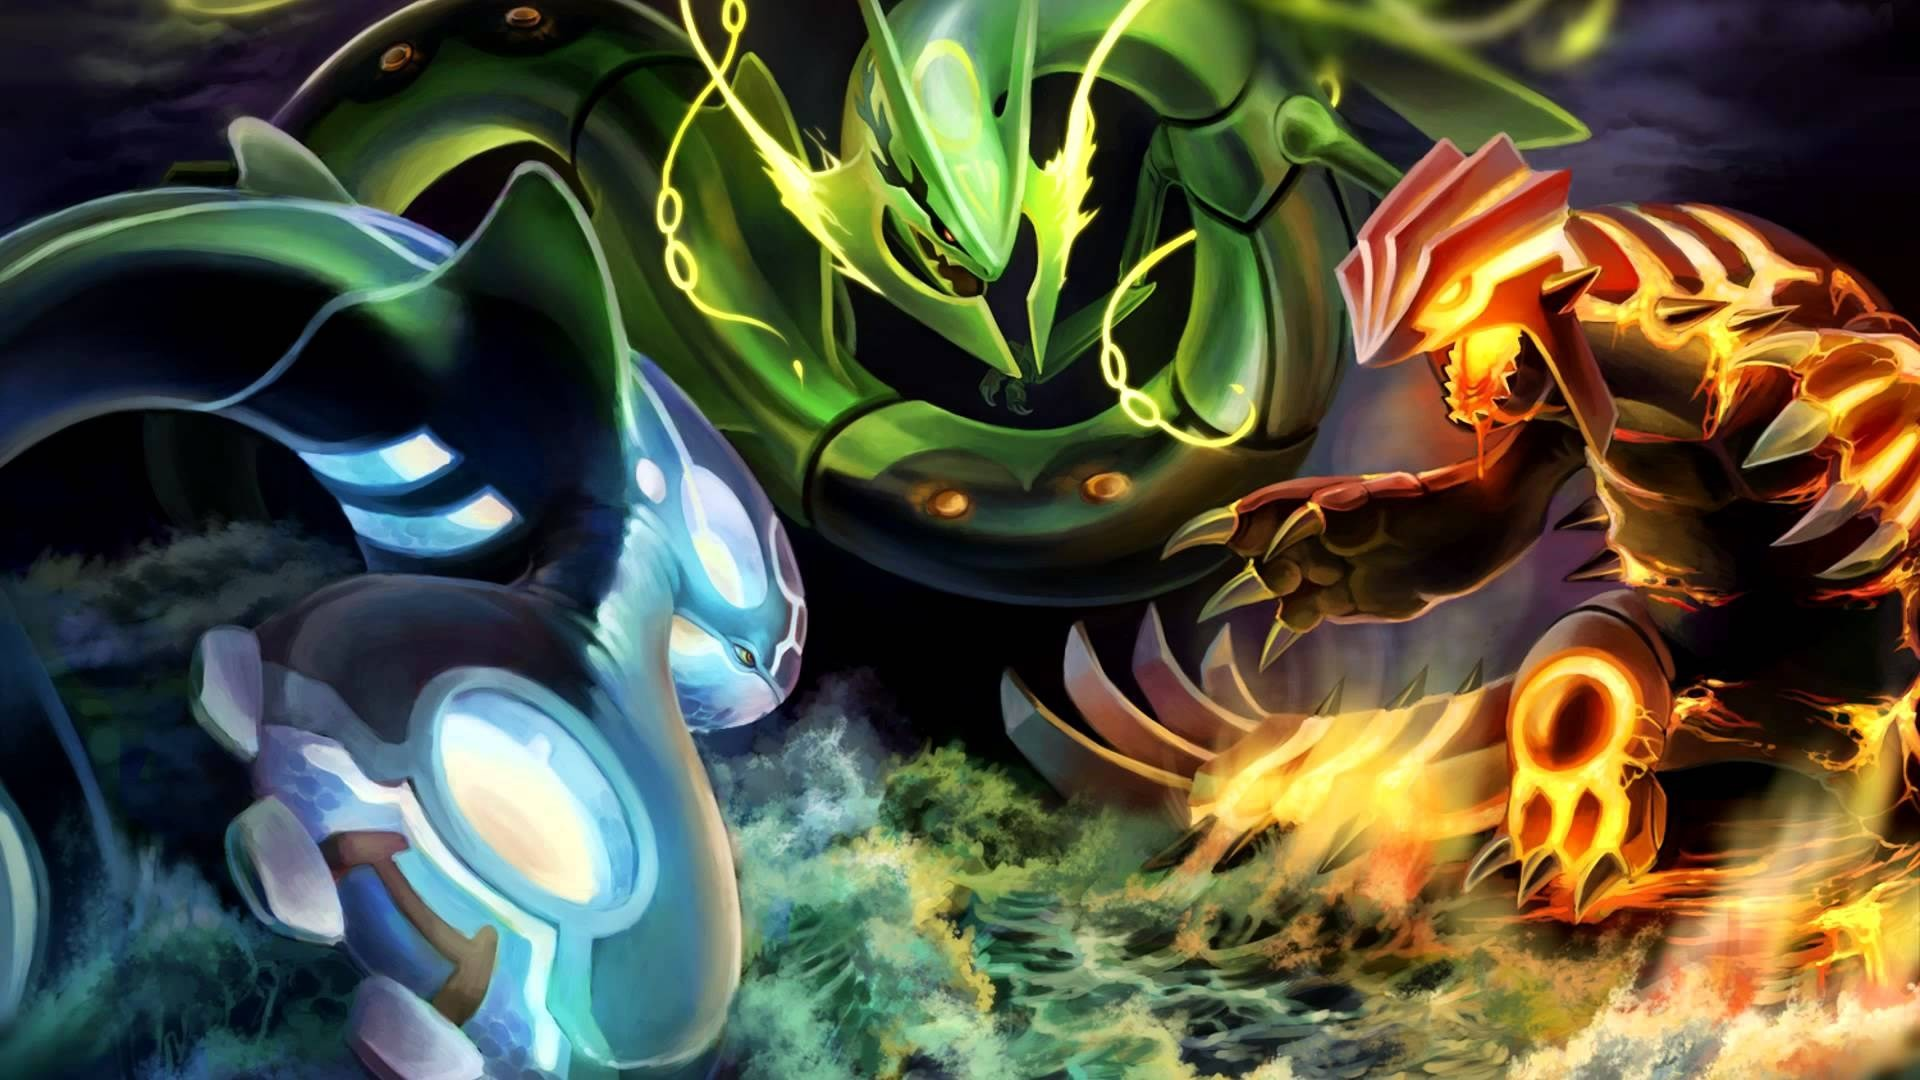 1920x1080 wallpaper pokemon legendary wallpaper pokemon legendary